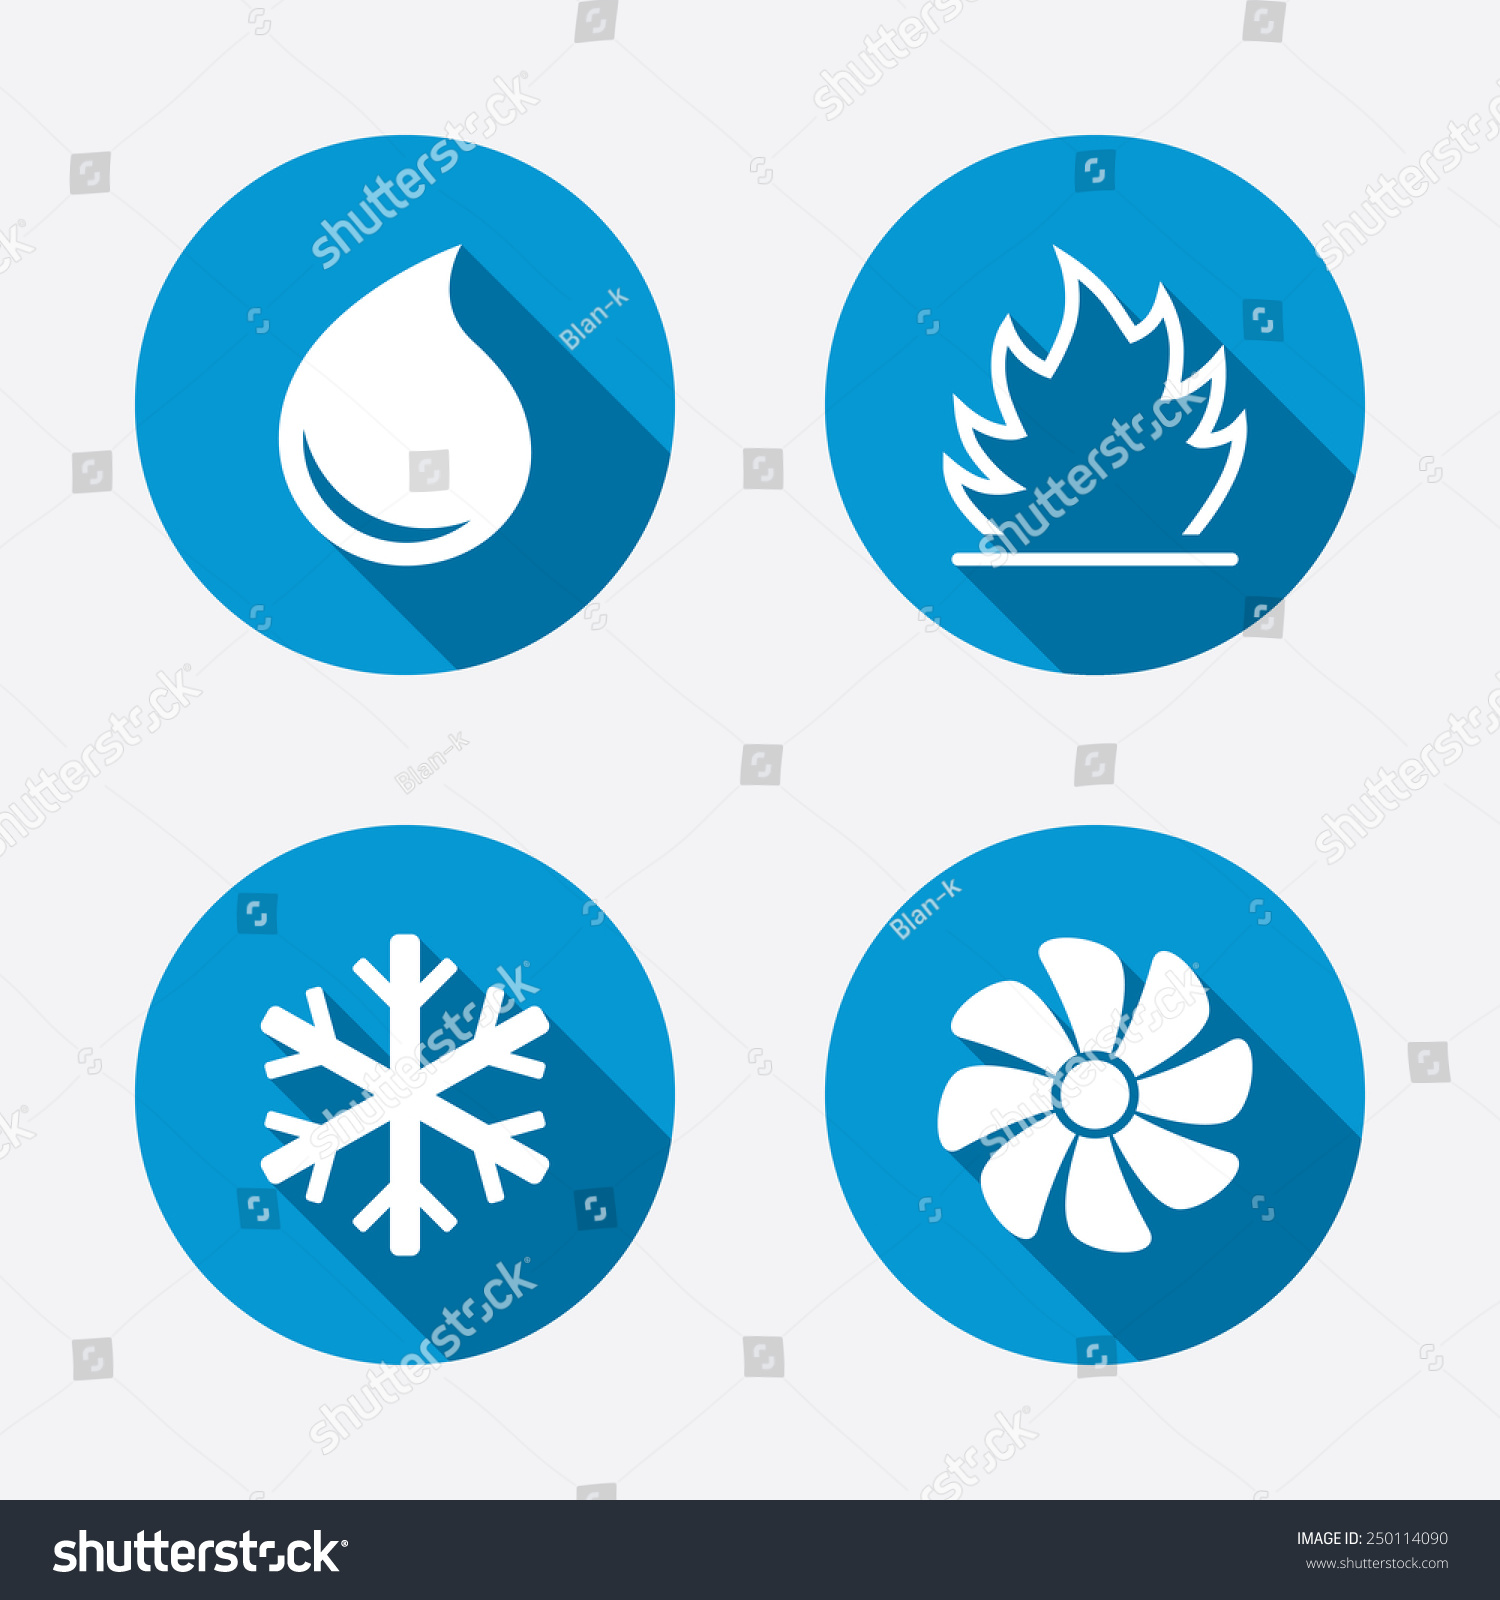 Hvac Icons Heating Ventilating Air Conditioning Stock Vector Ac Circuit Board Prices Conditioner And Symbols Water Supply Climate Control